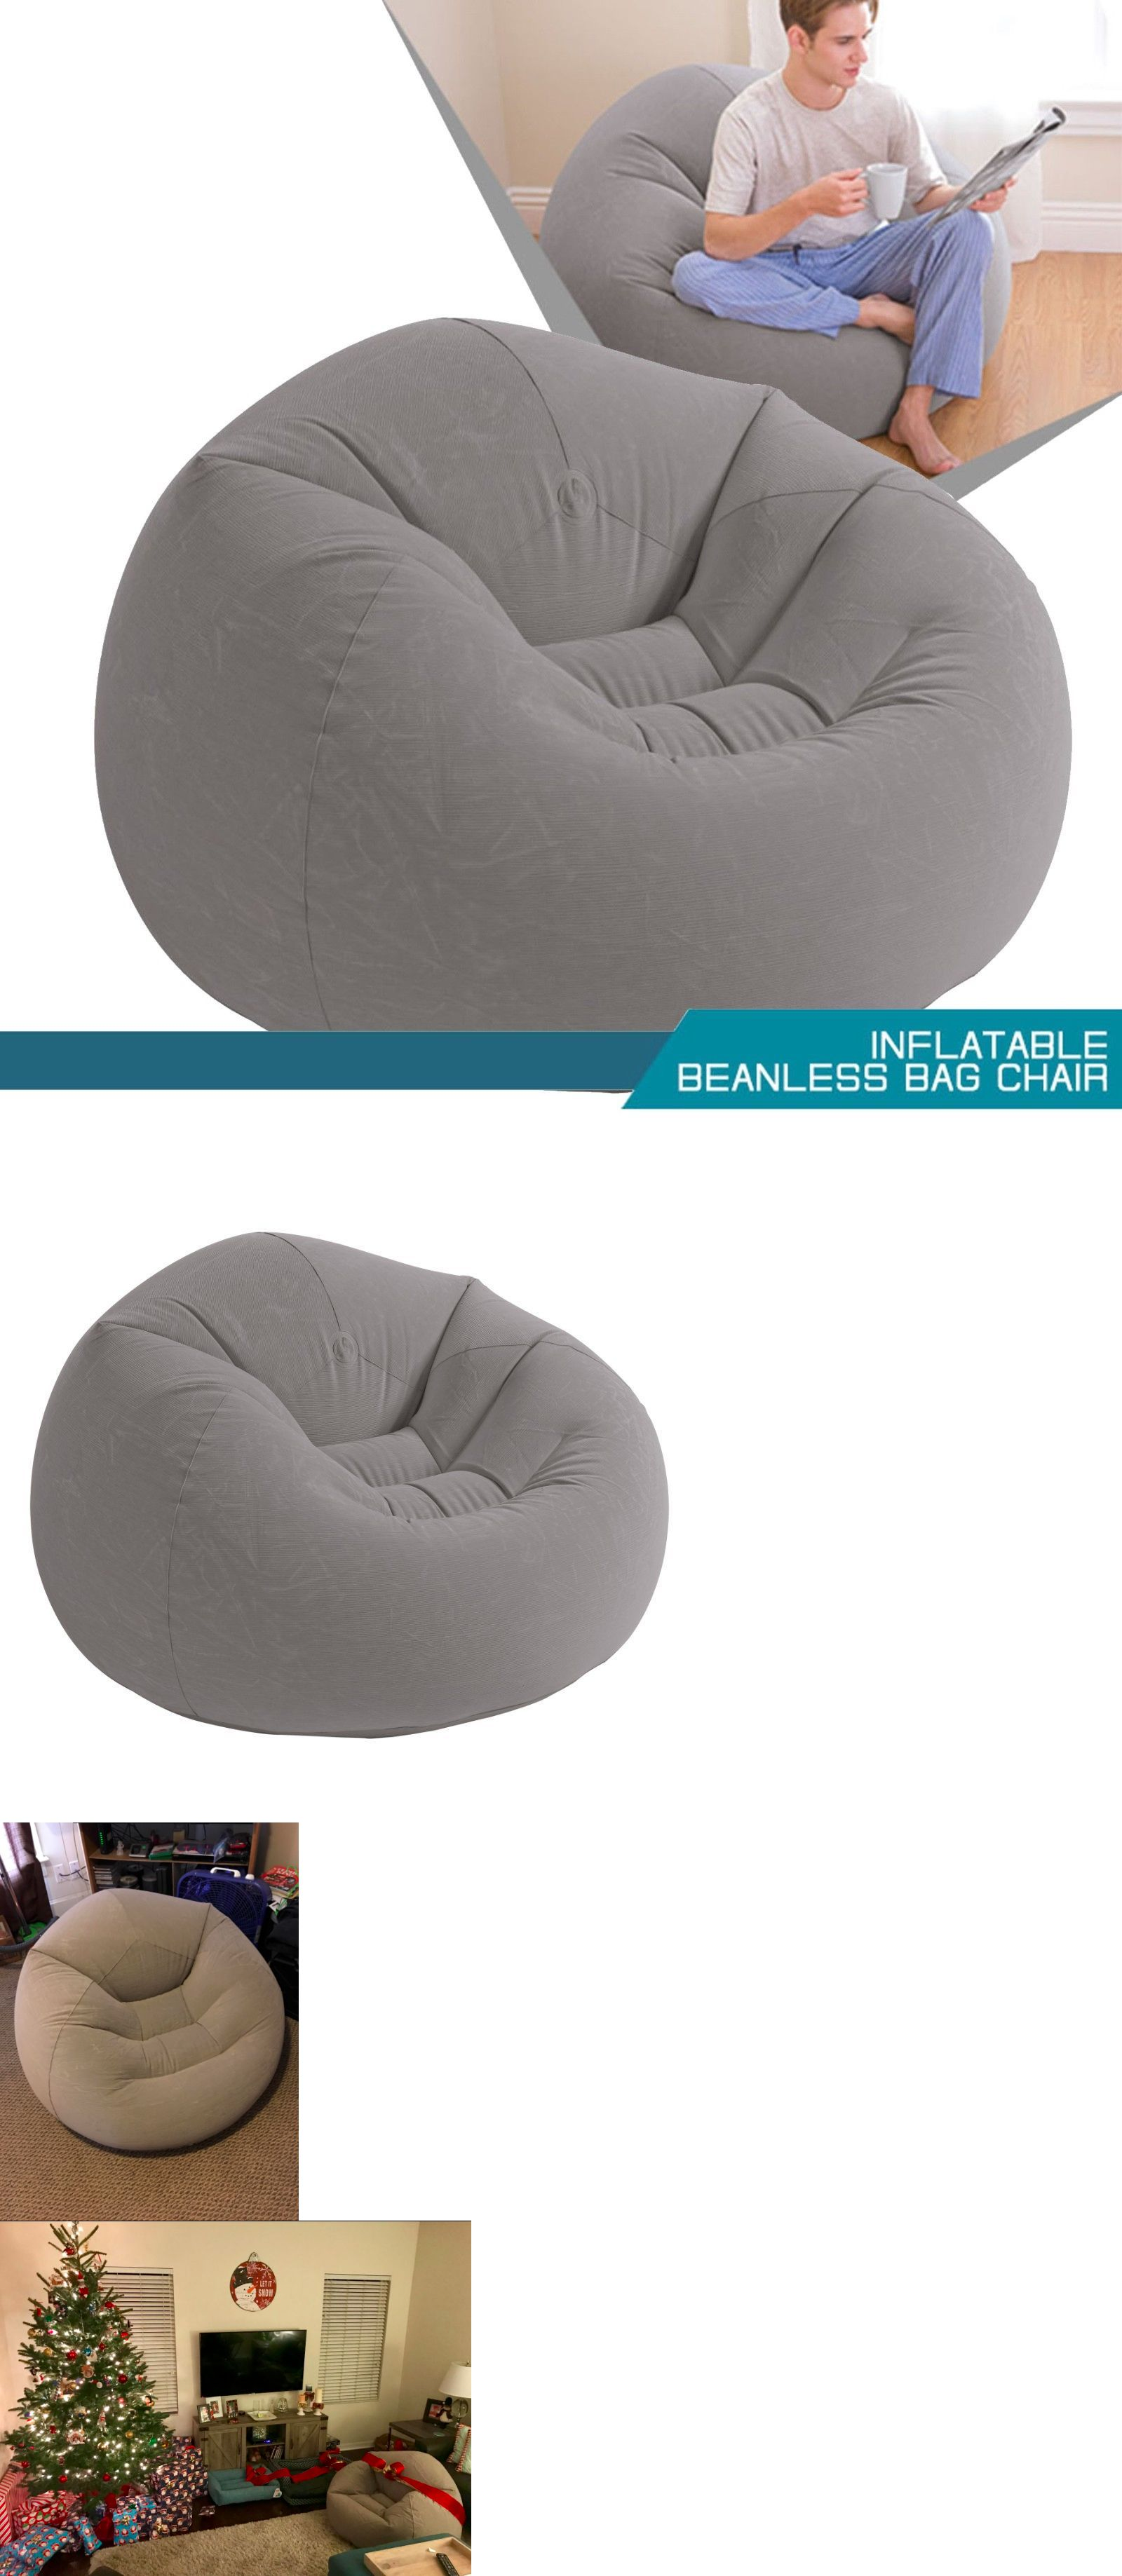 Bean Bag Chair Inflatable Beanless ud xud xud Inflates Quickly